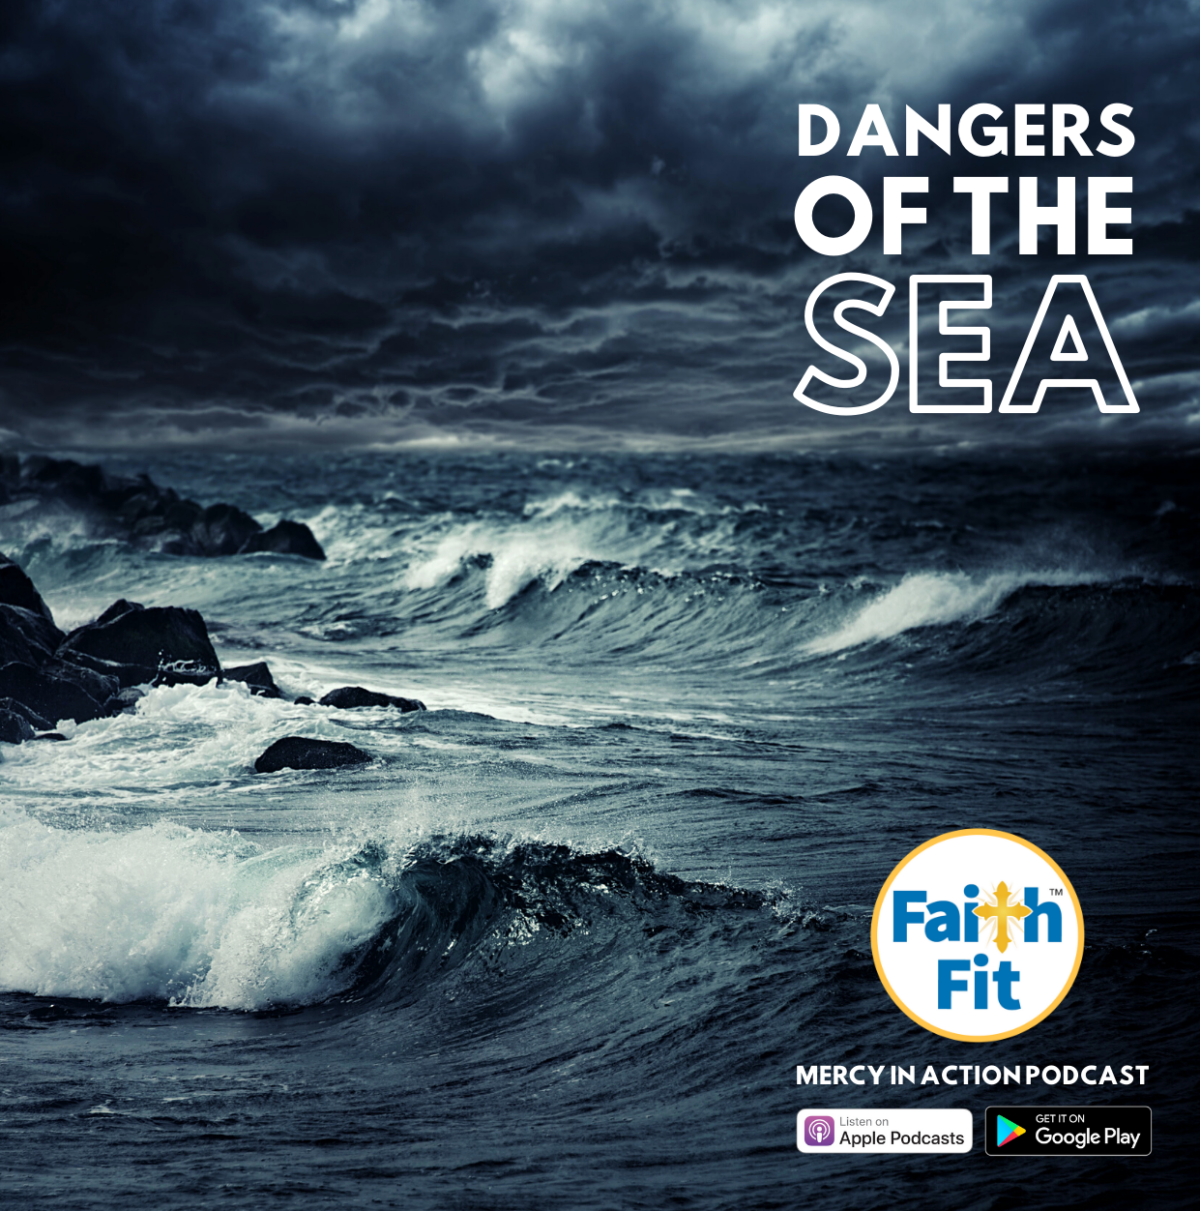 #22: Dangers of the Sea